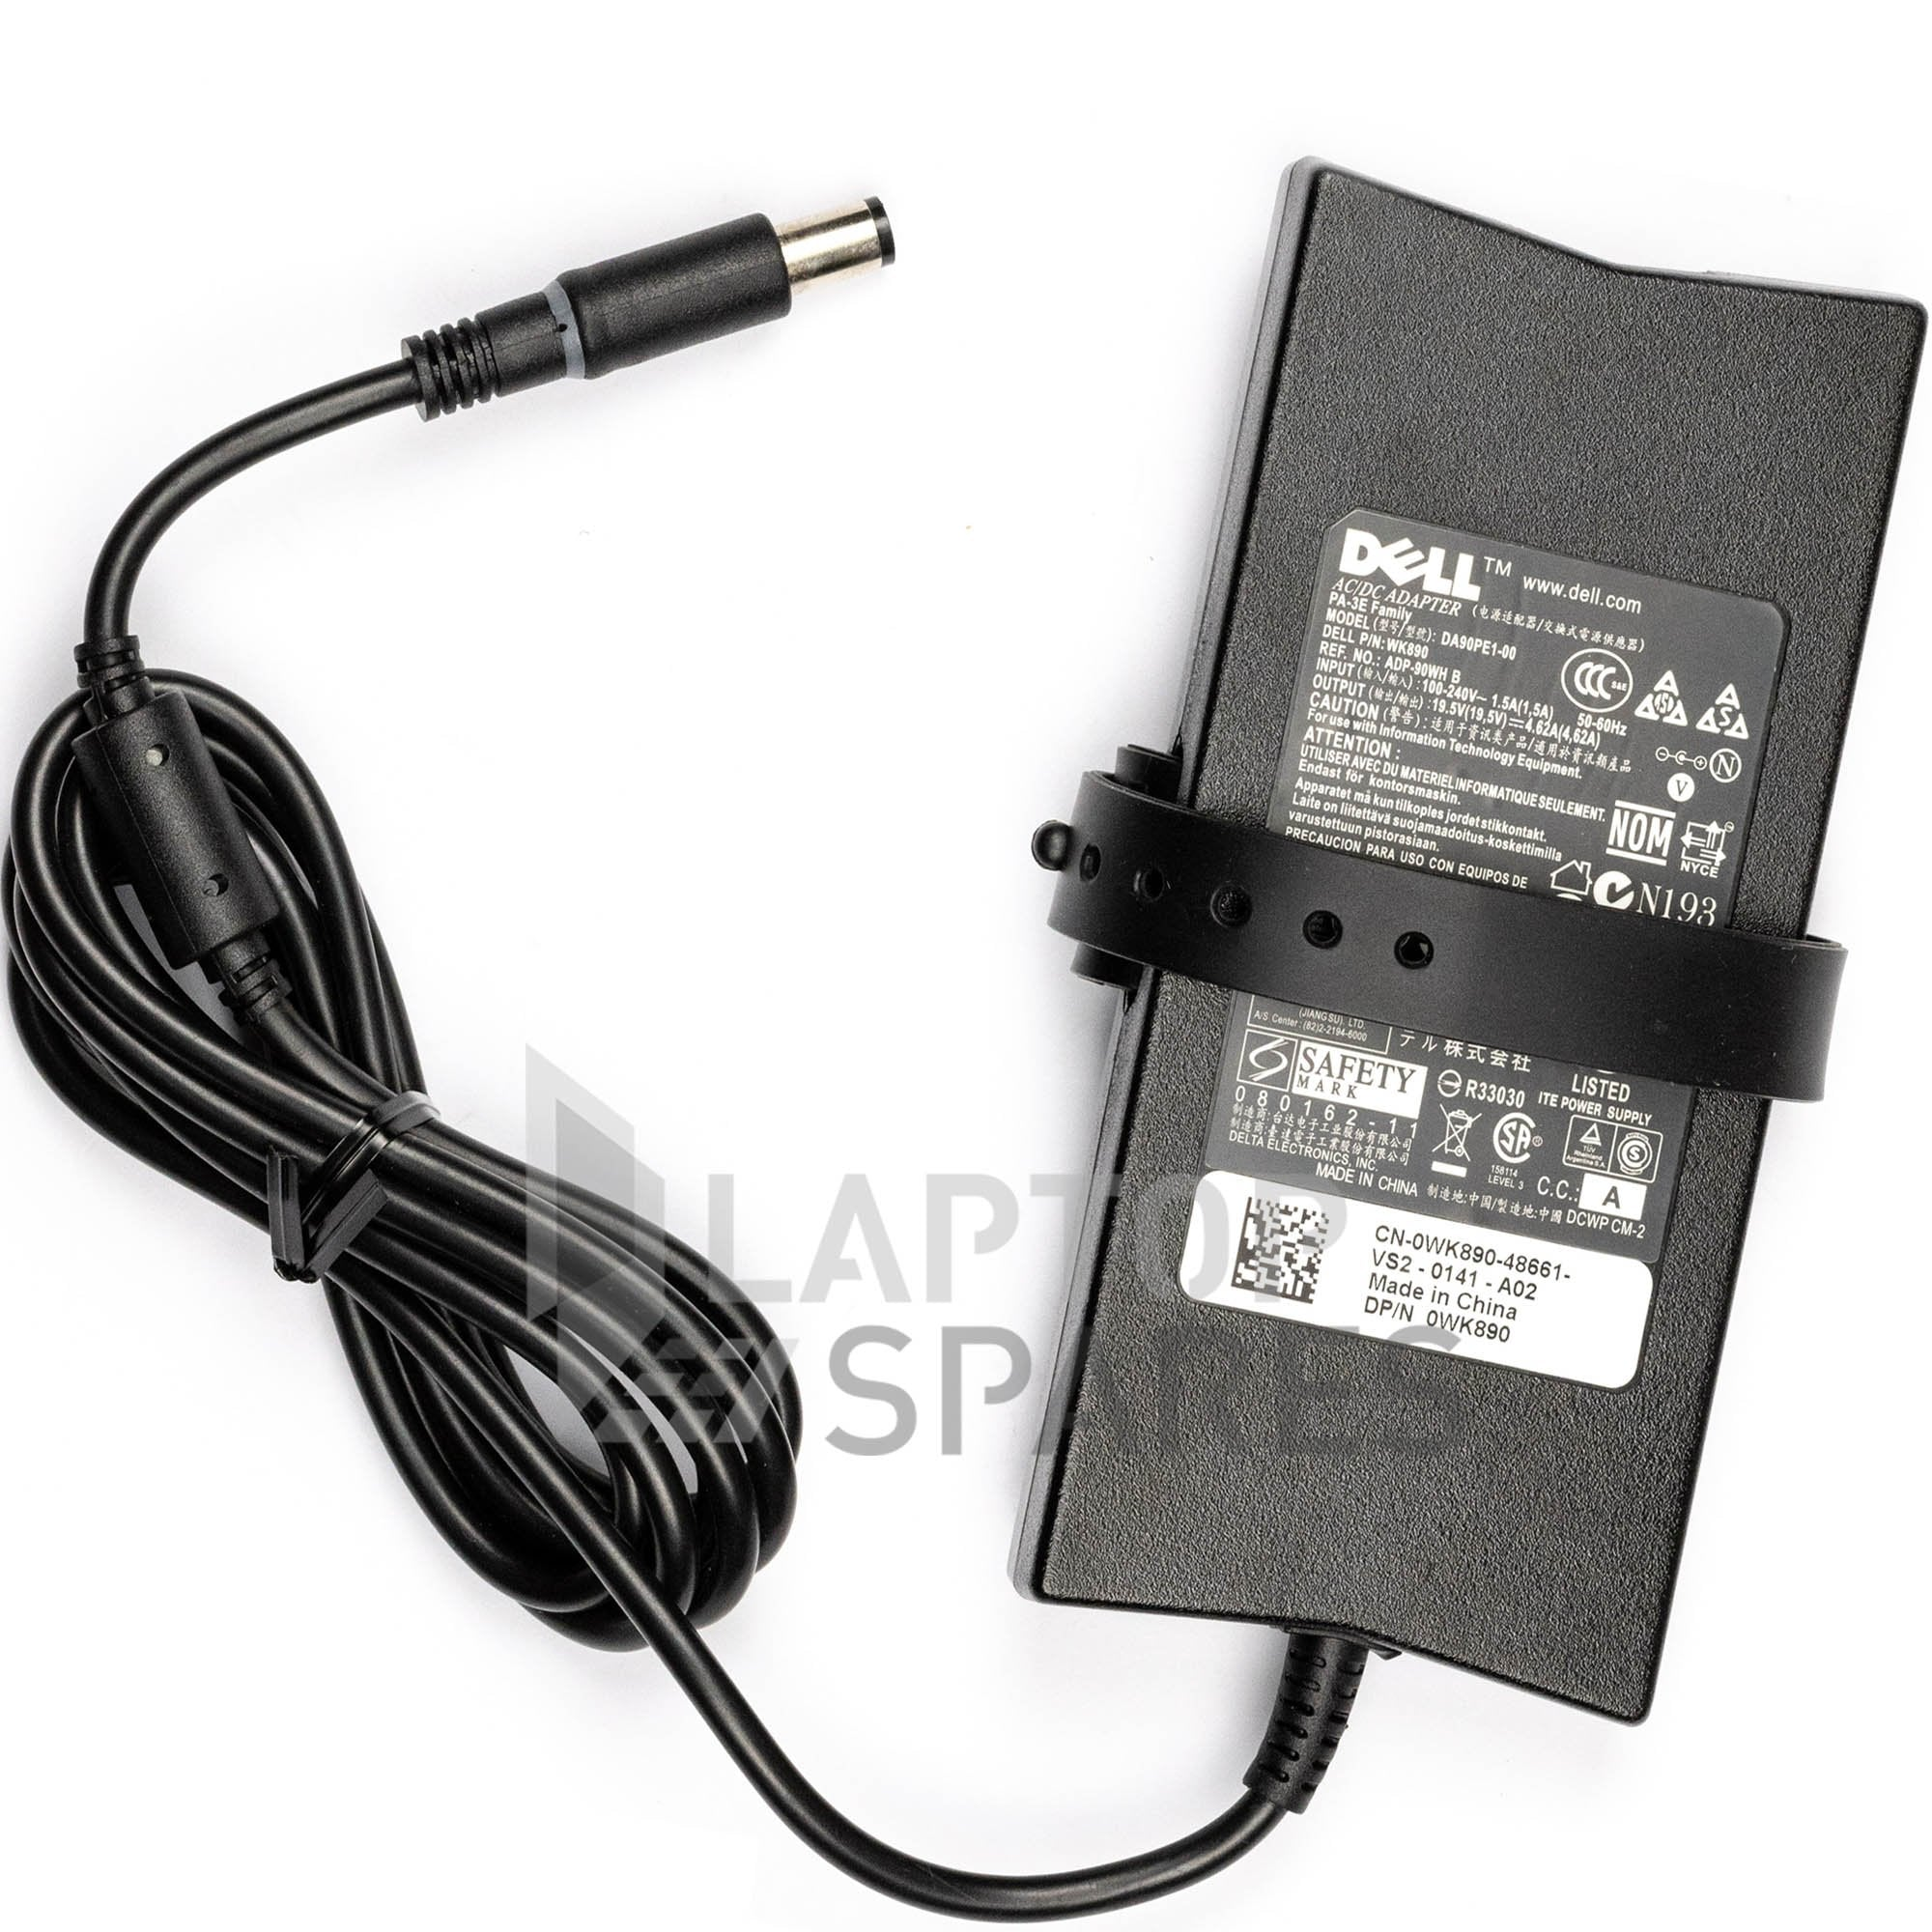 Dell Inspiron 1318 1320 Laptop Slim AC Adapter Charger